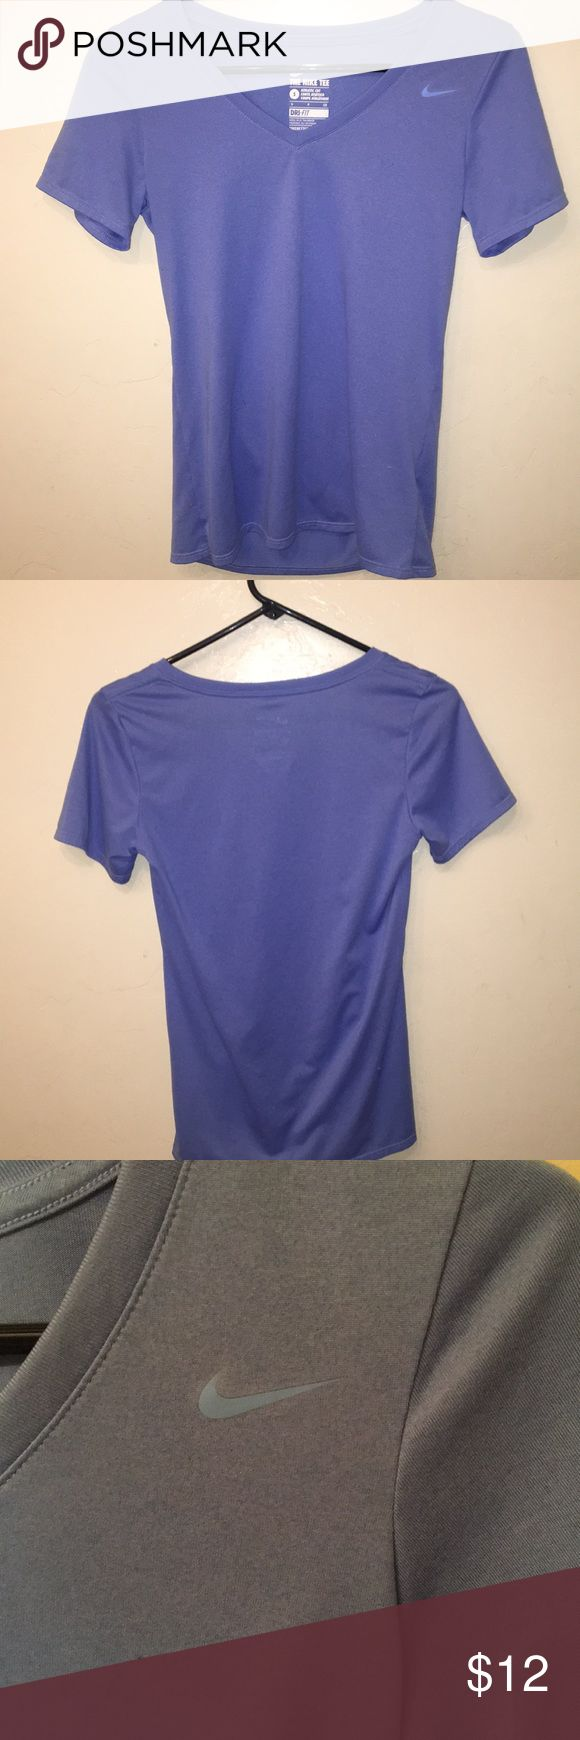 Nike Dri-fit tshirt This shirt is very light weight and breathable. The light blue color is really pretty. This shirt would be great for doing really any sort of physical activity. Only worn once! Nike Tops Tees - Short Sleeve